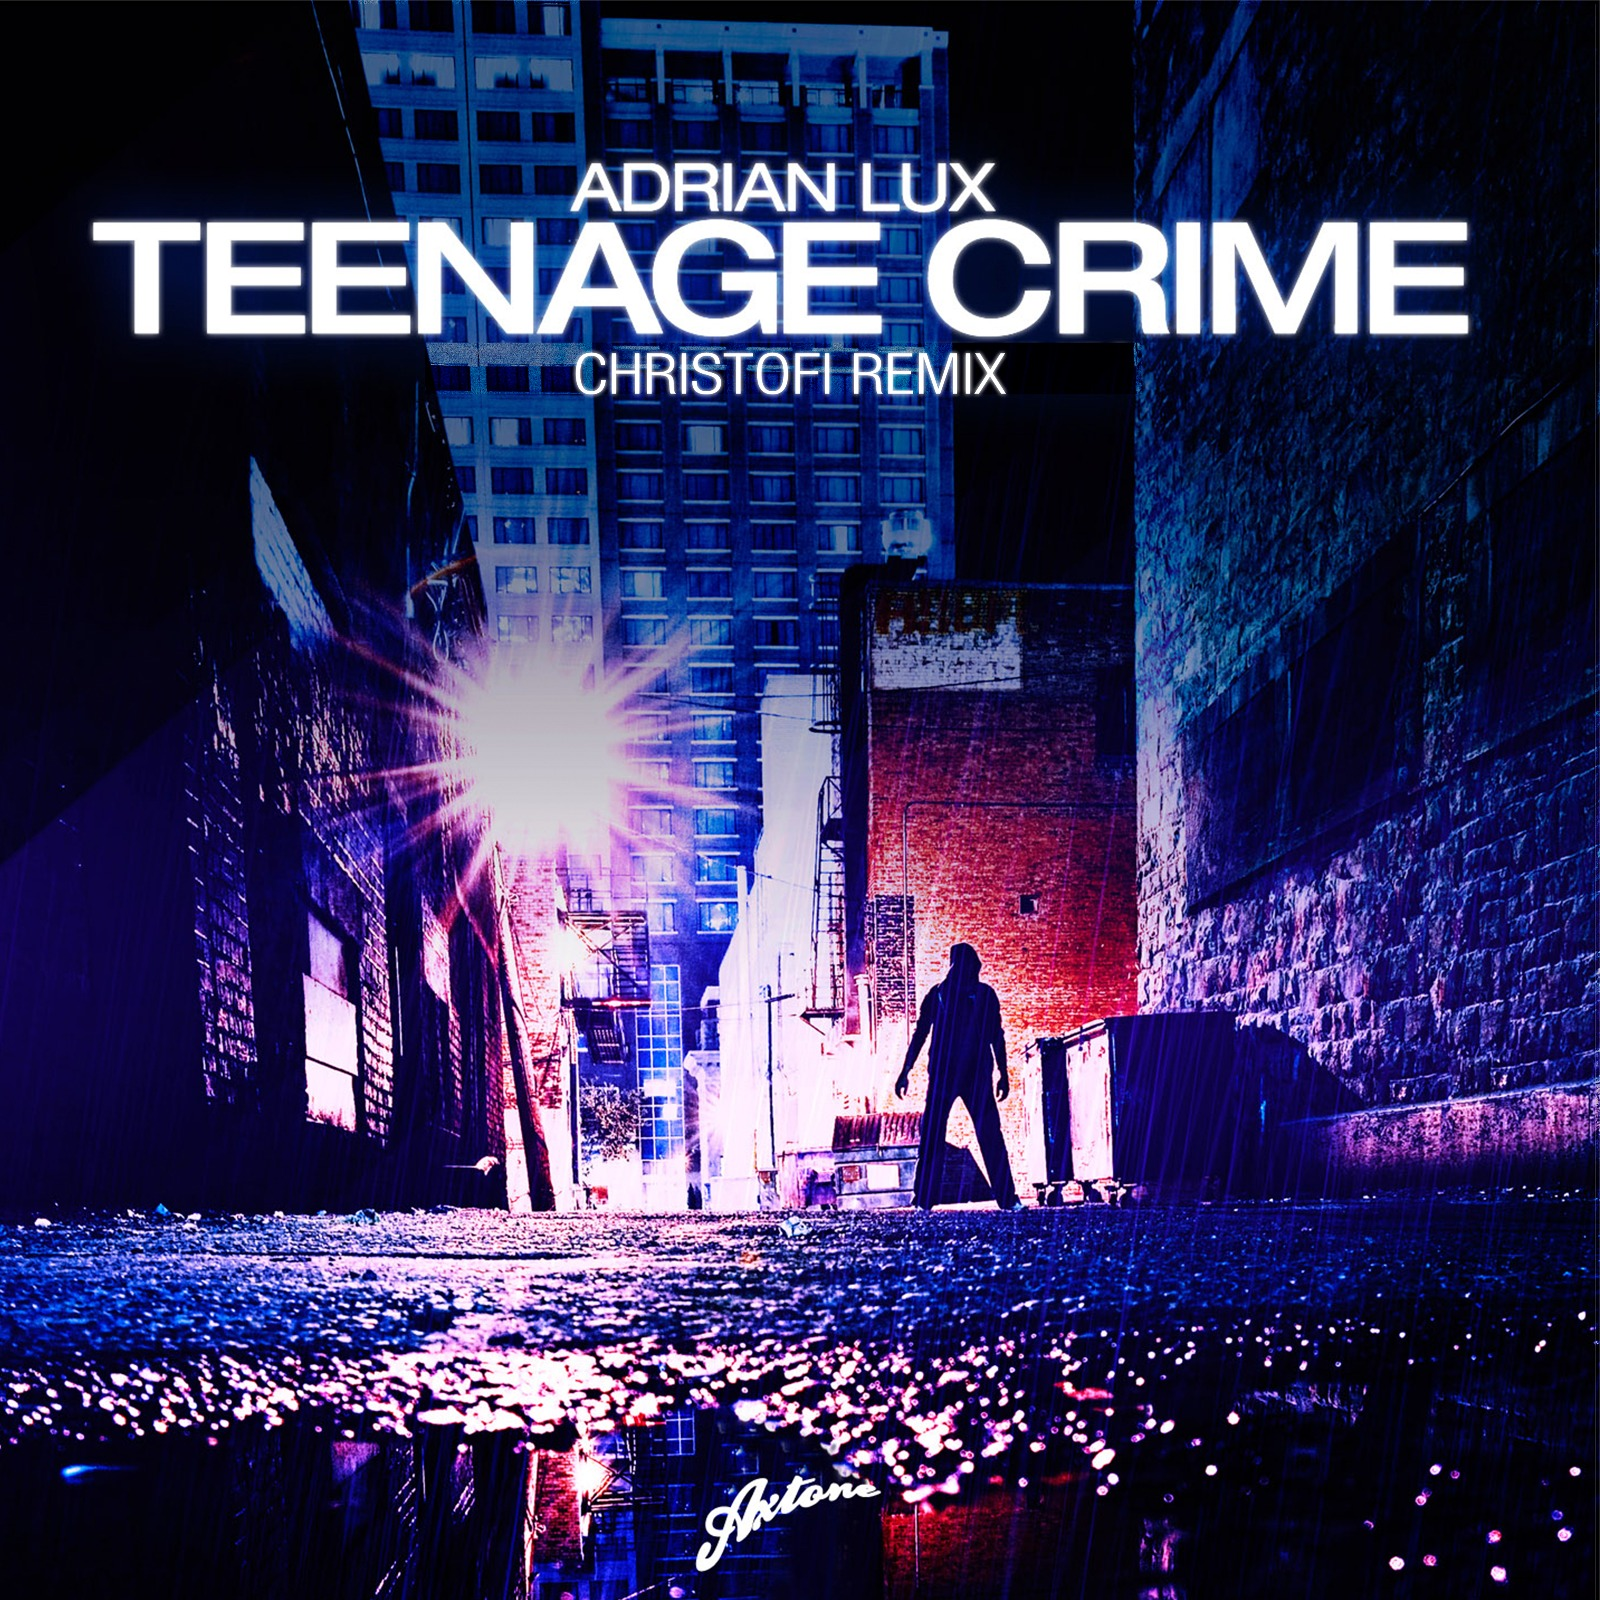 Adrian Lux – Teenage Crime (Christofi Remix)